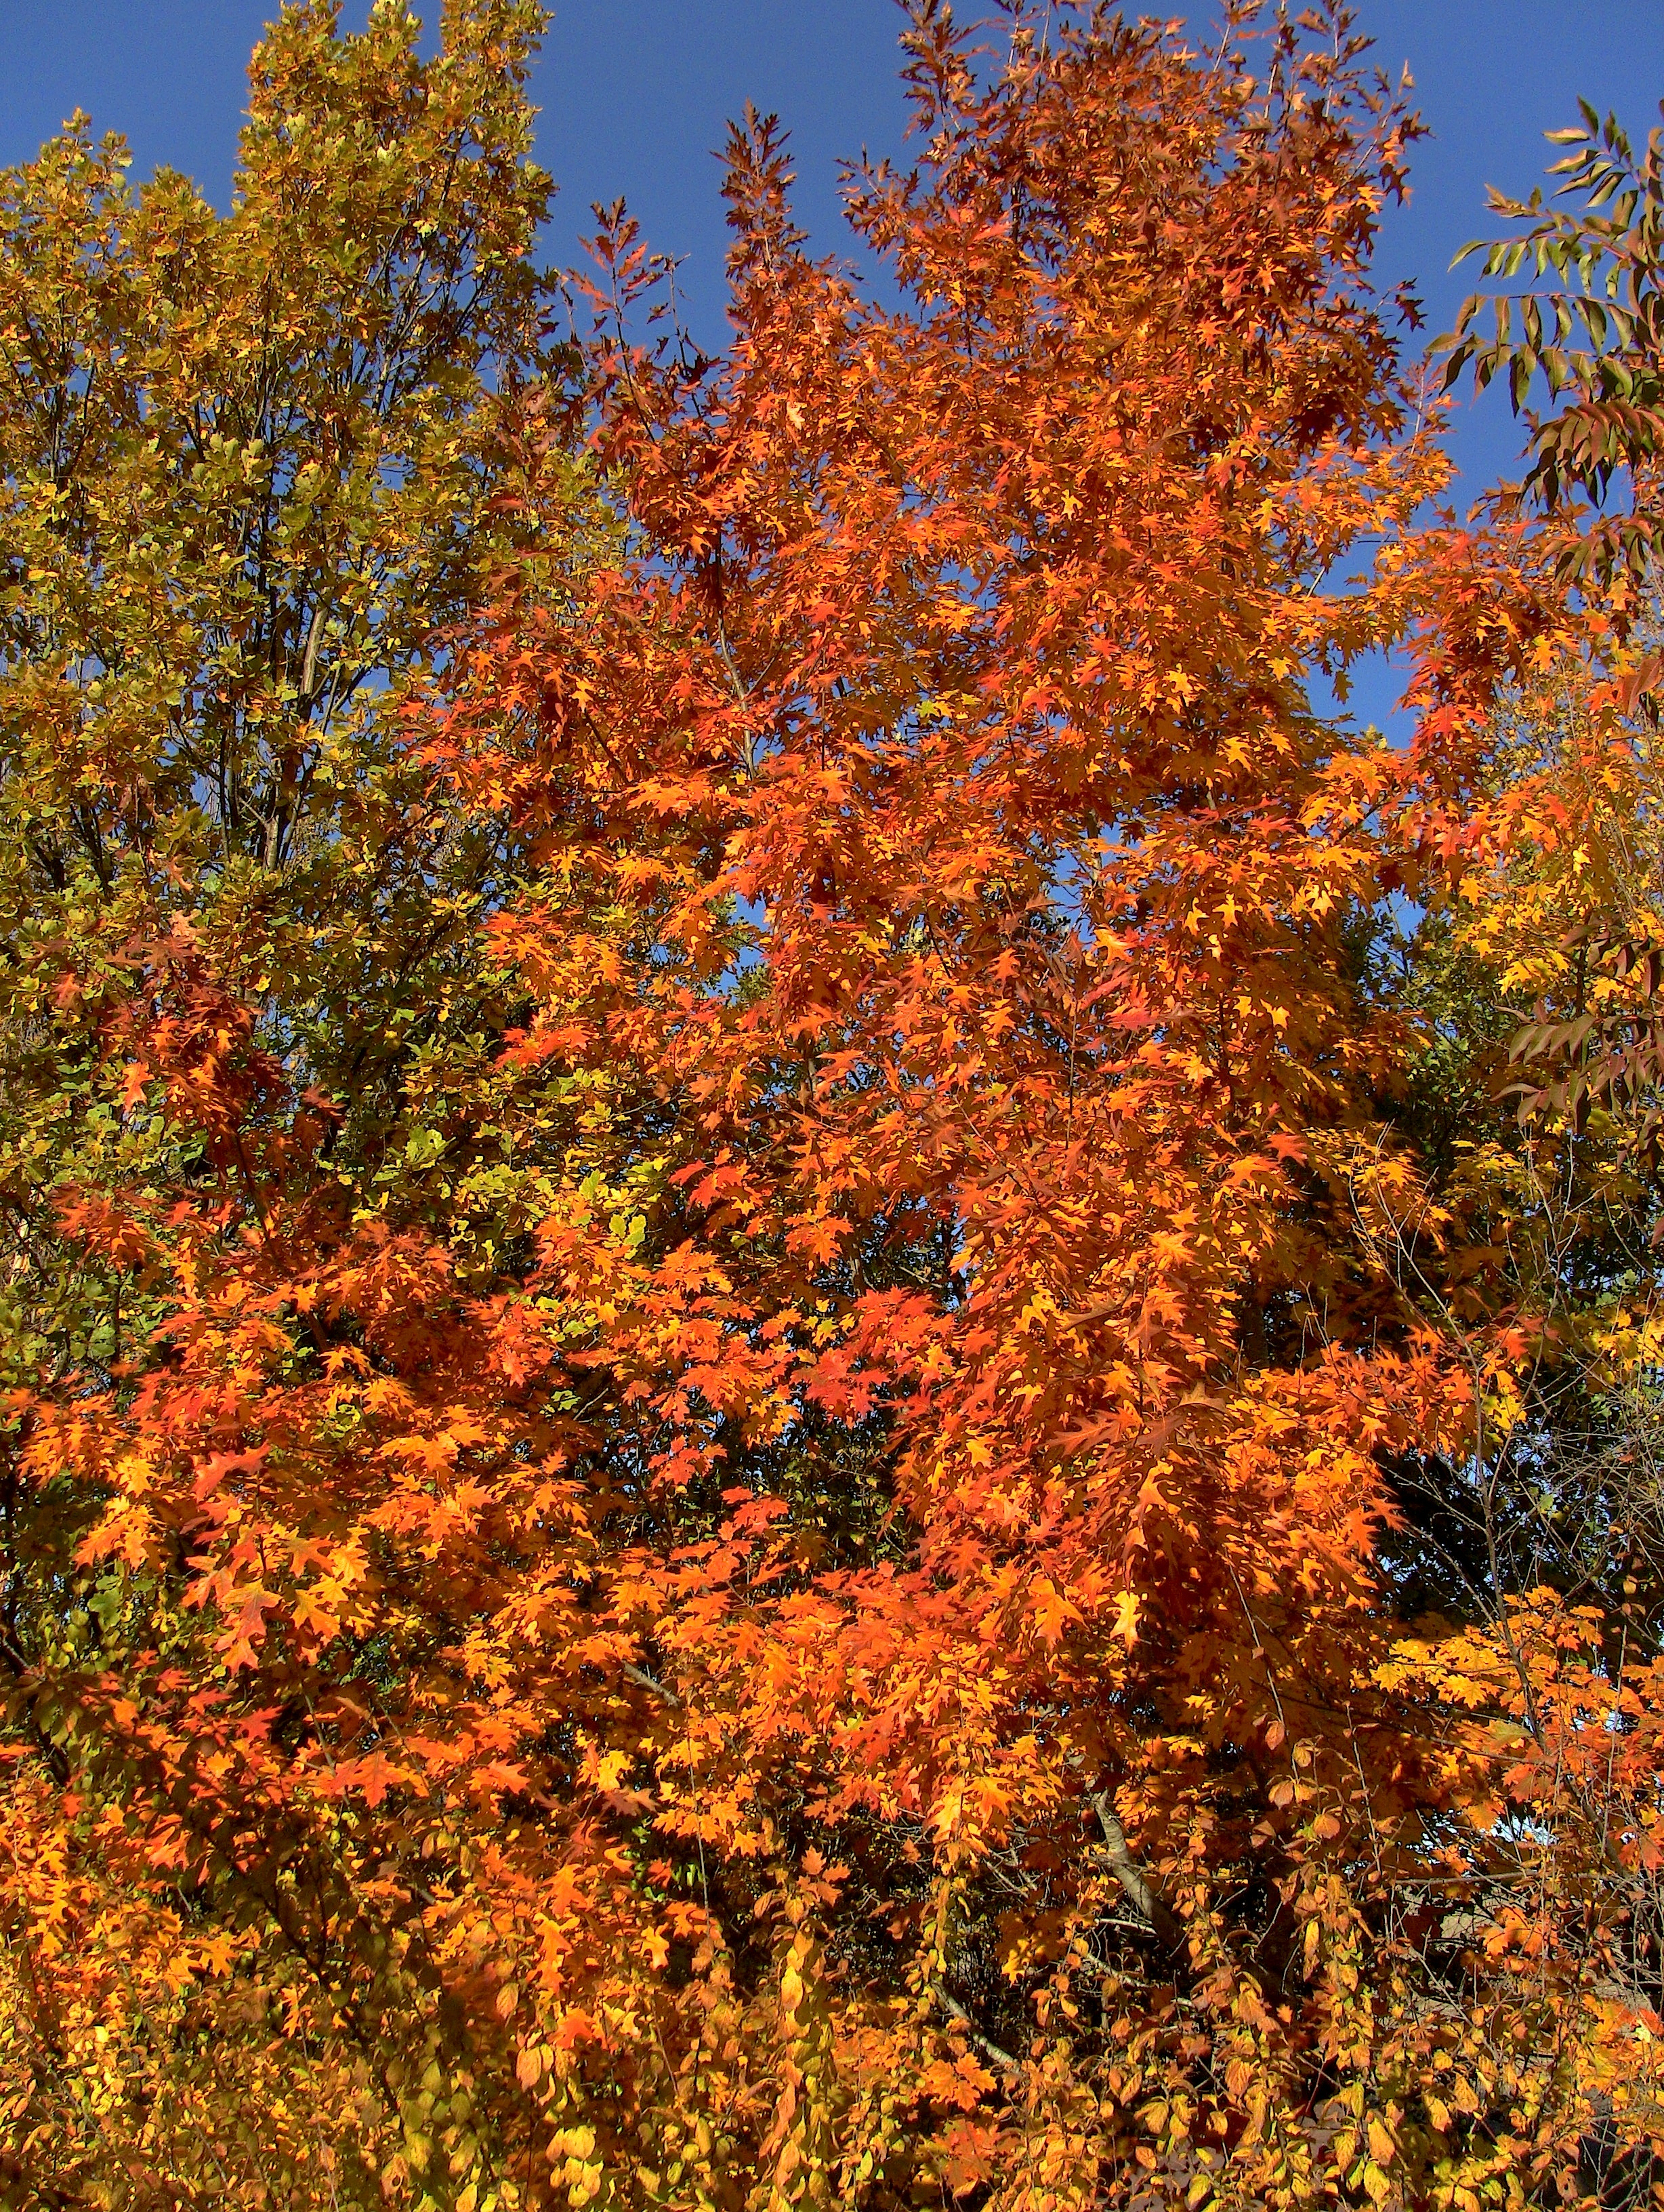 Scarlet Oak, Chinese Pistache, English Oak and Flowering Plum in the Fall